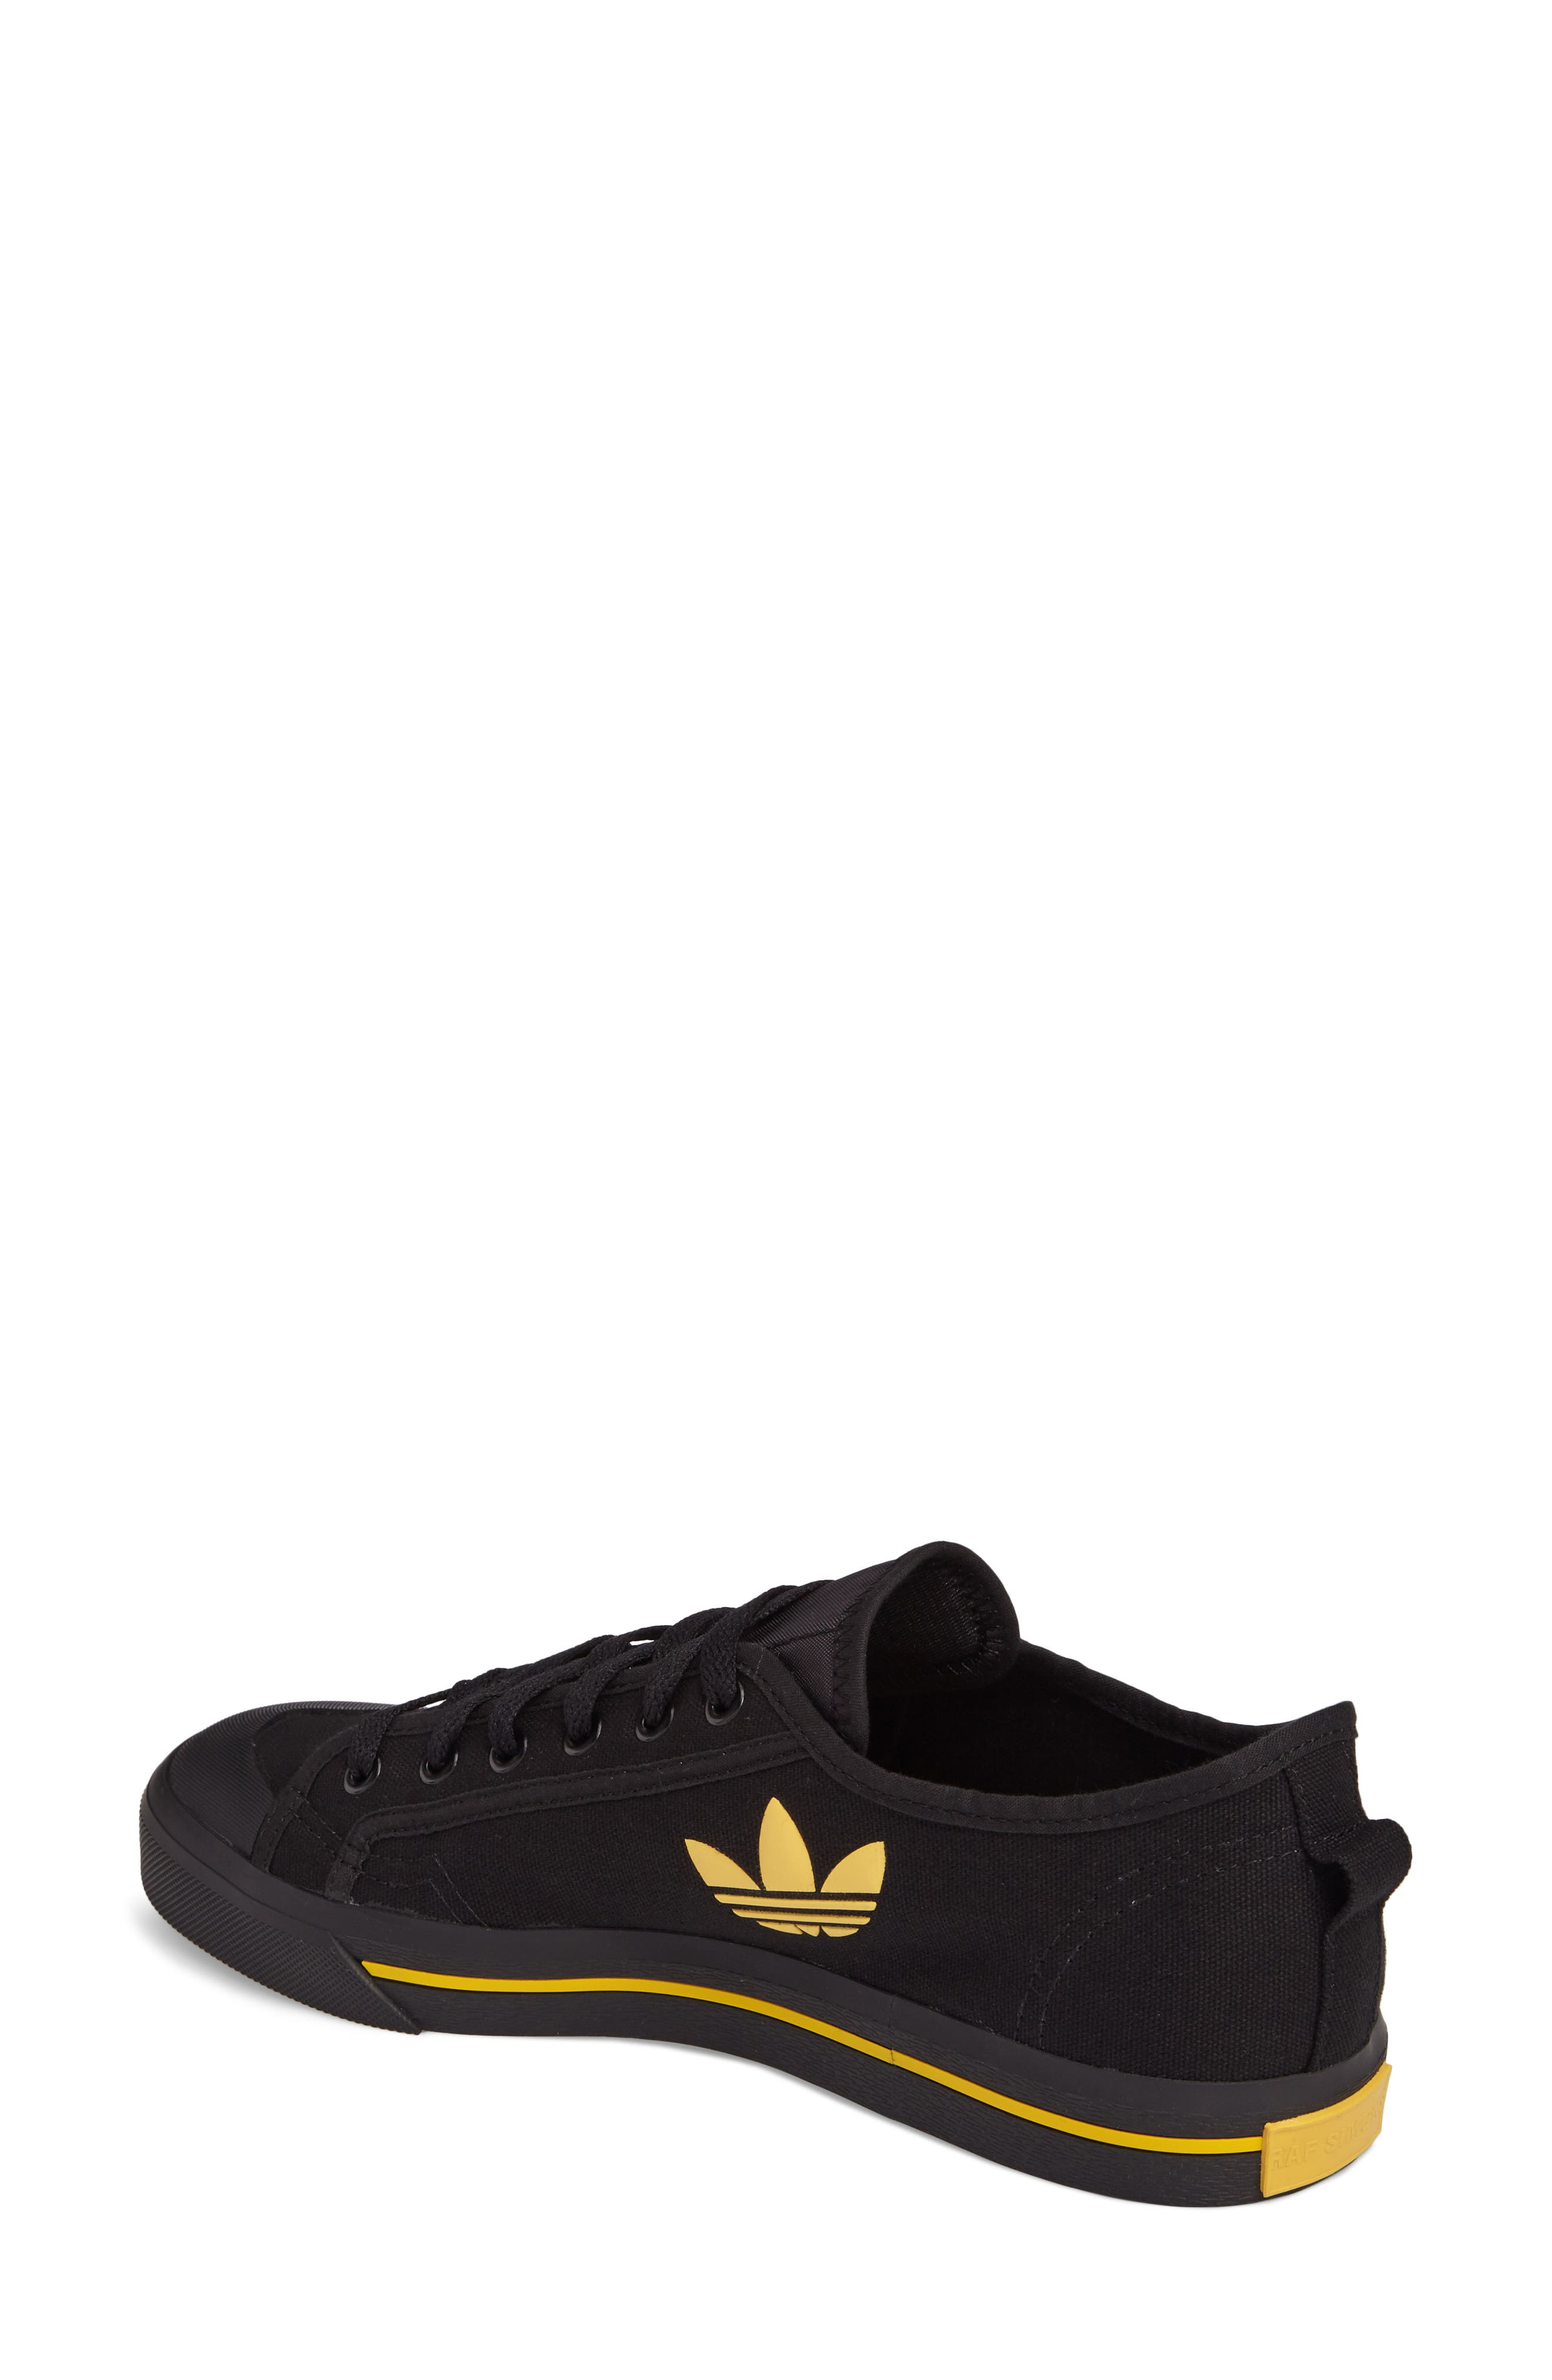 adidas by Raf Simons Spirit Low Top Sneaker,                             Alternate thumbnail 2, color,                             001